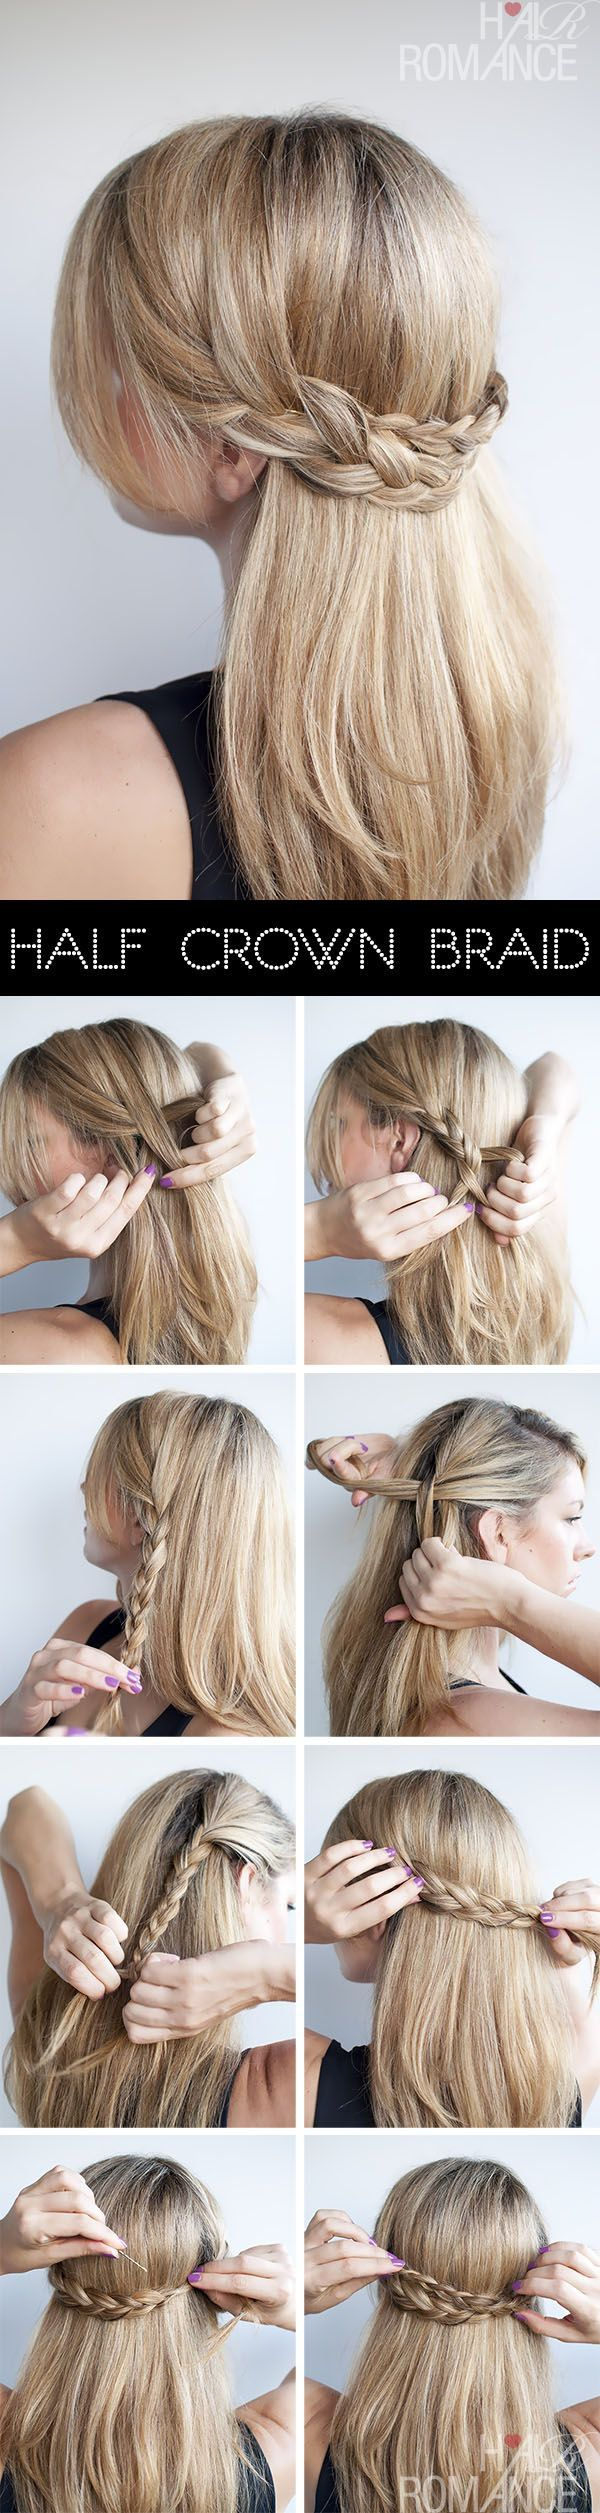 best hair do images on pinterest hair dos bridal hairstyles